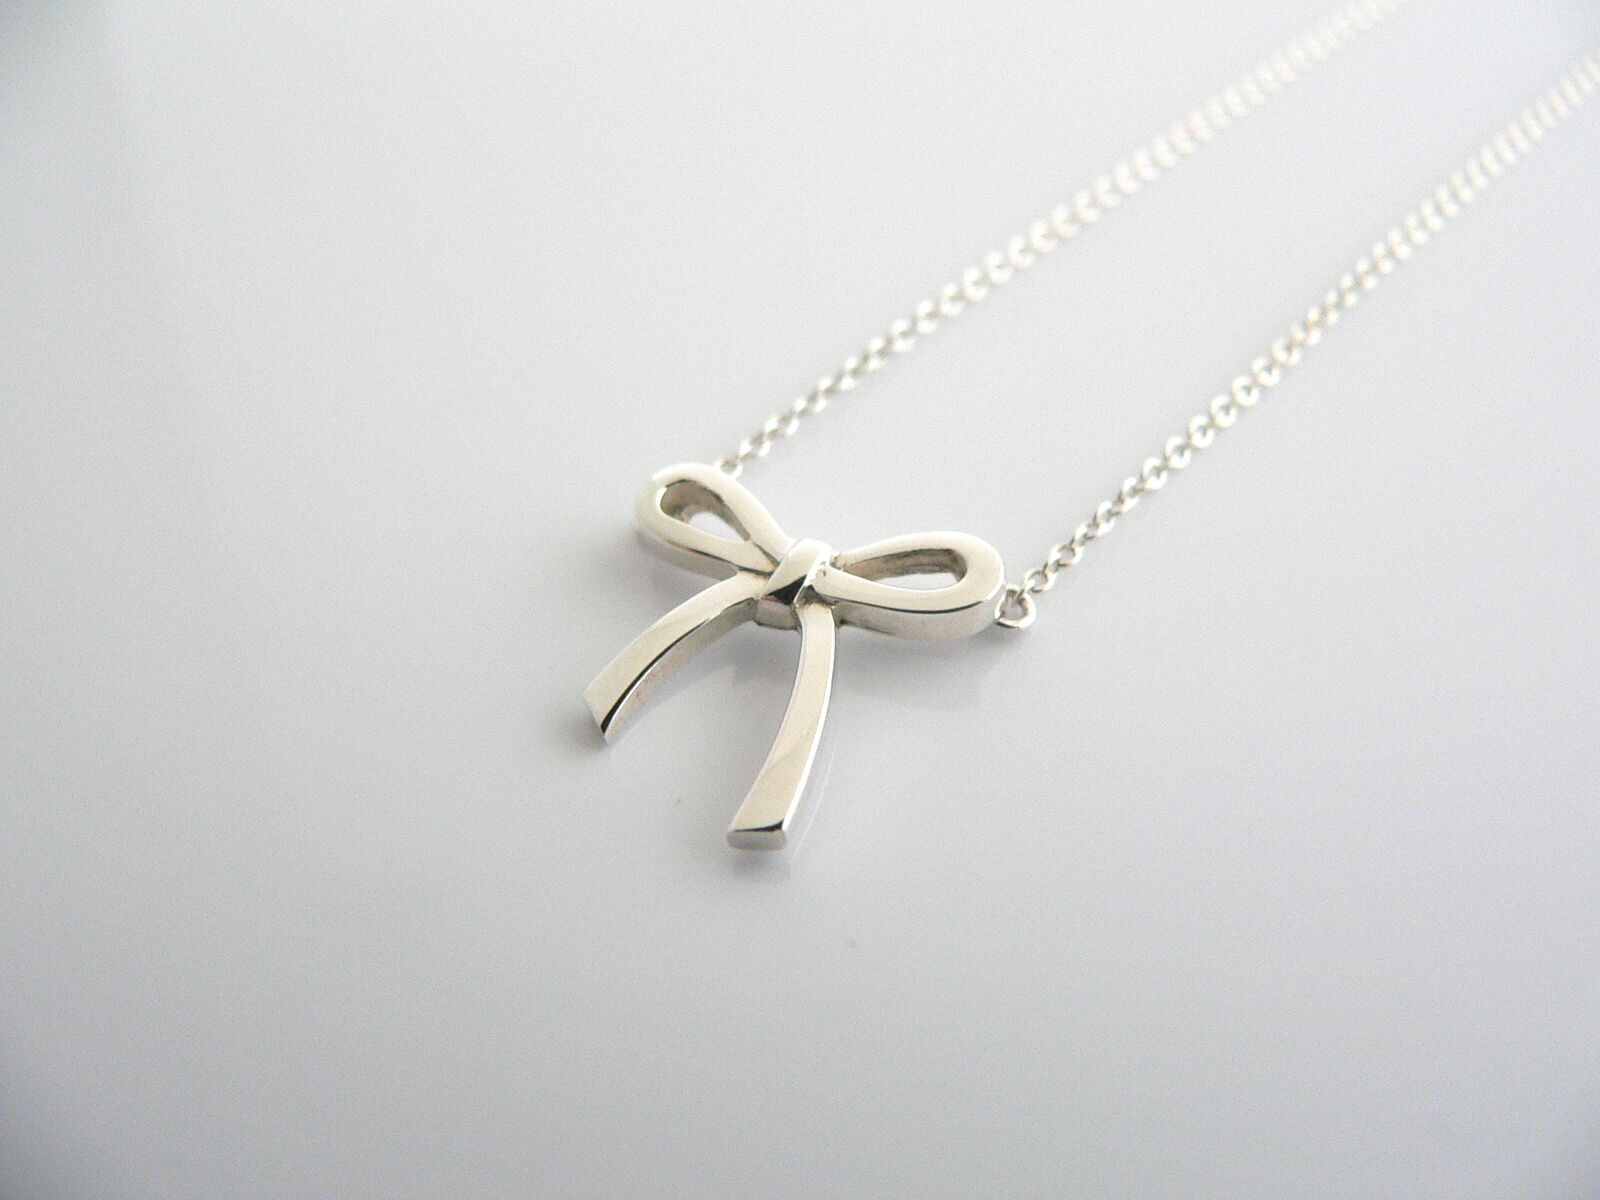 Tiffany & Co  Silver Ribbon Bow Necklace Pendant Charm Chain Gift Love